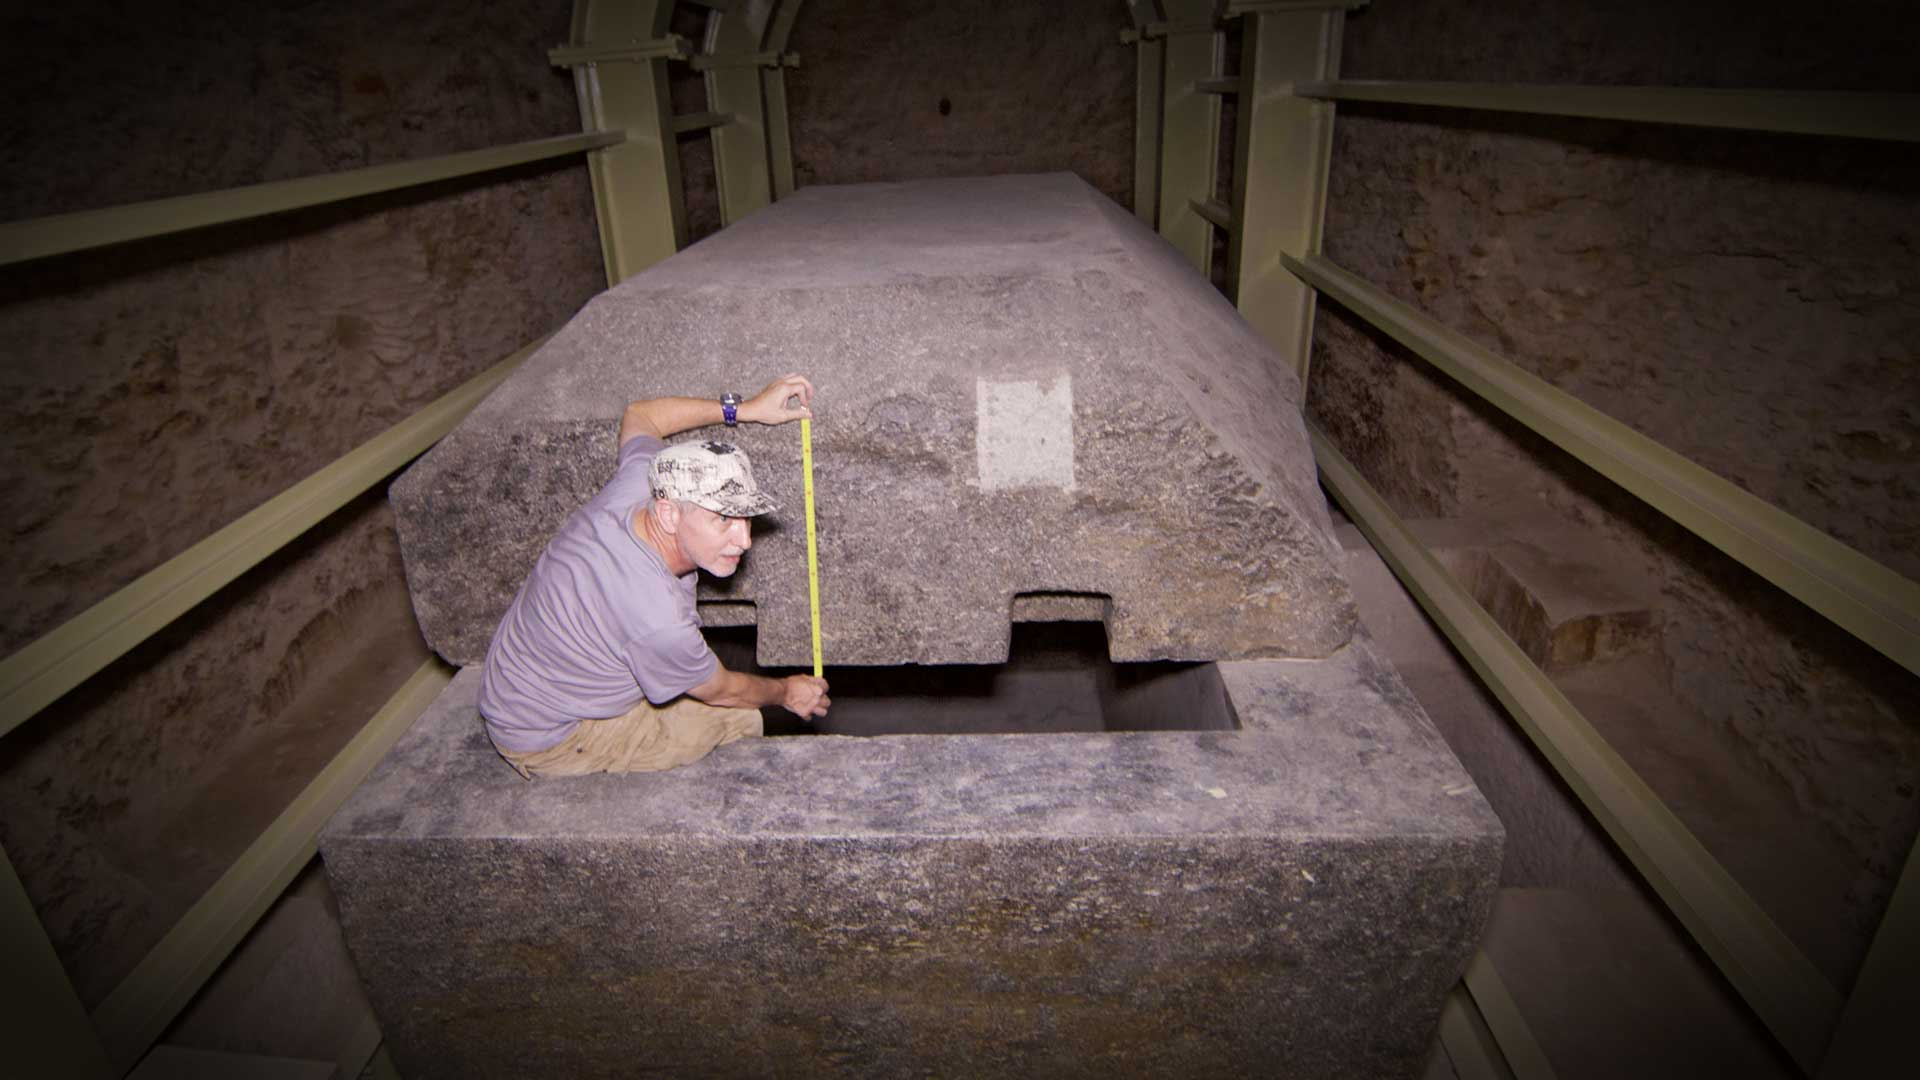 GS when measuring a granite sarcophagus. The container weighs 65 tons